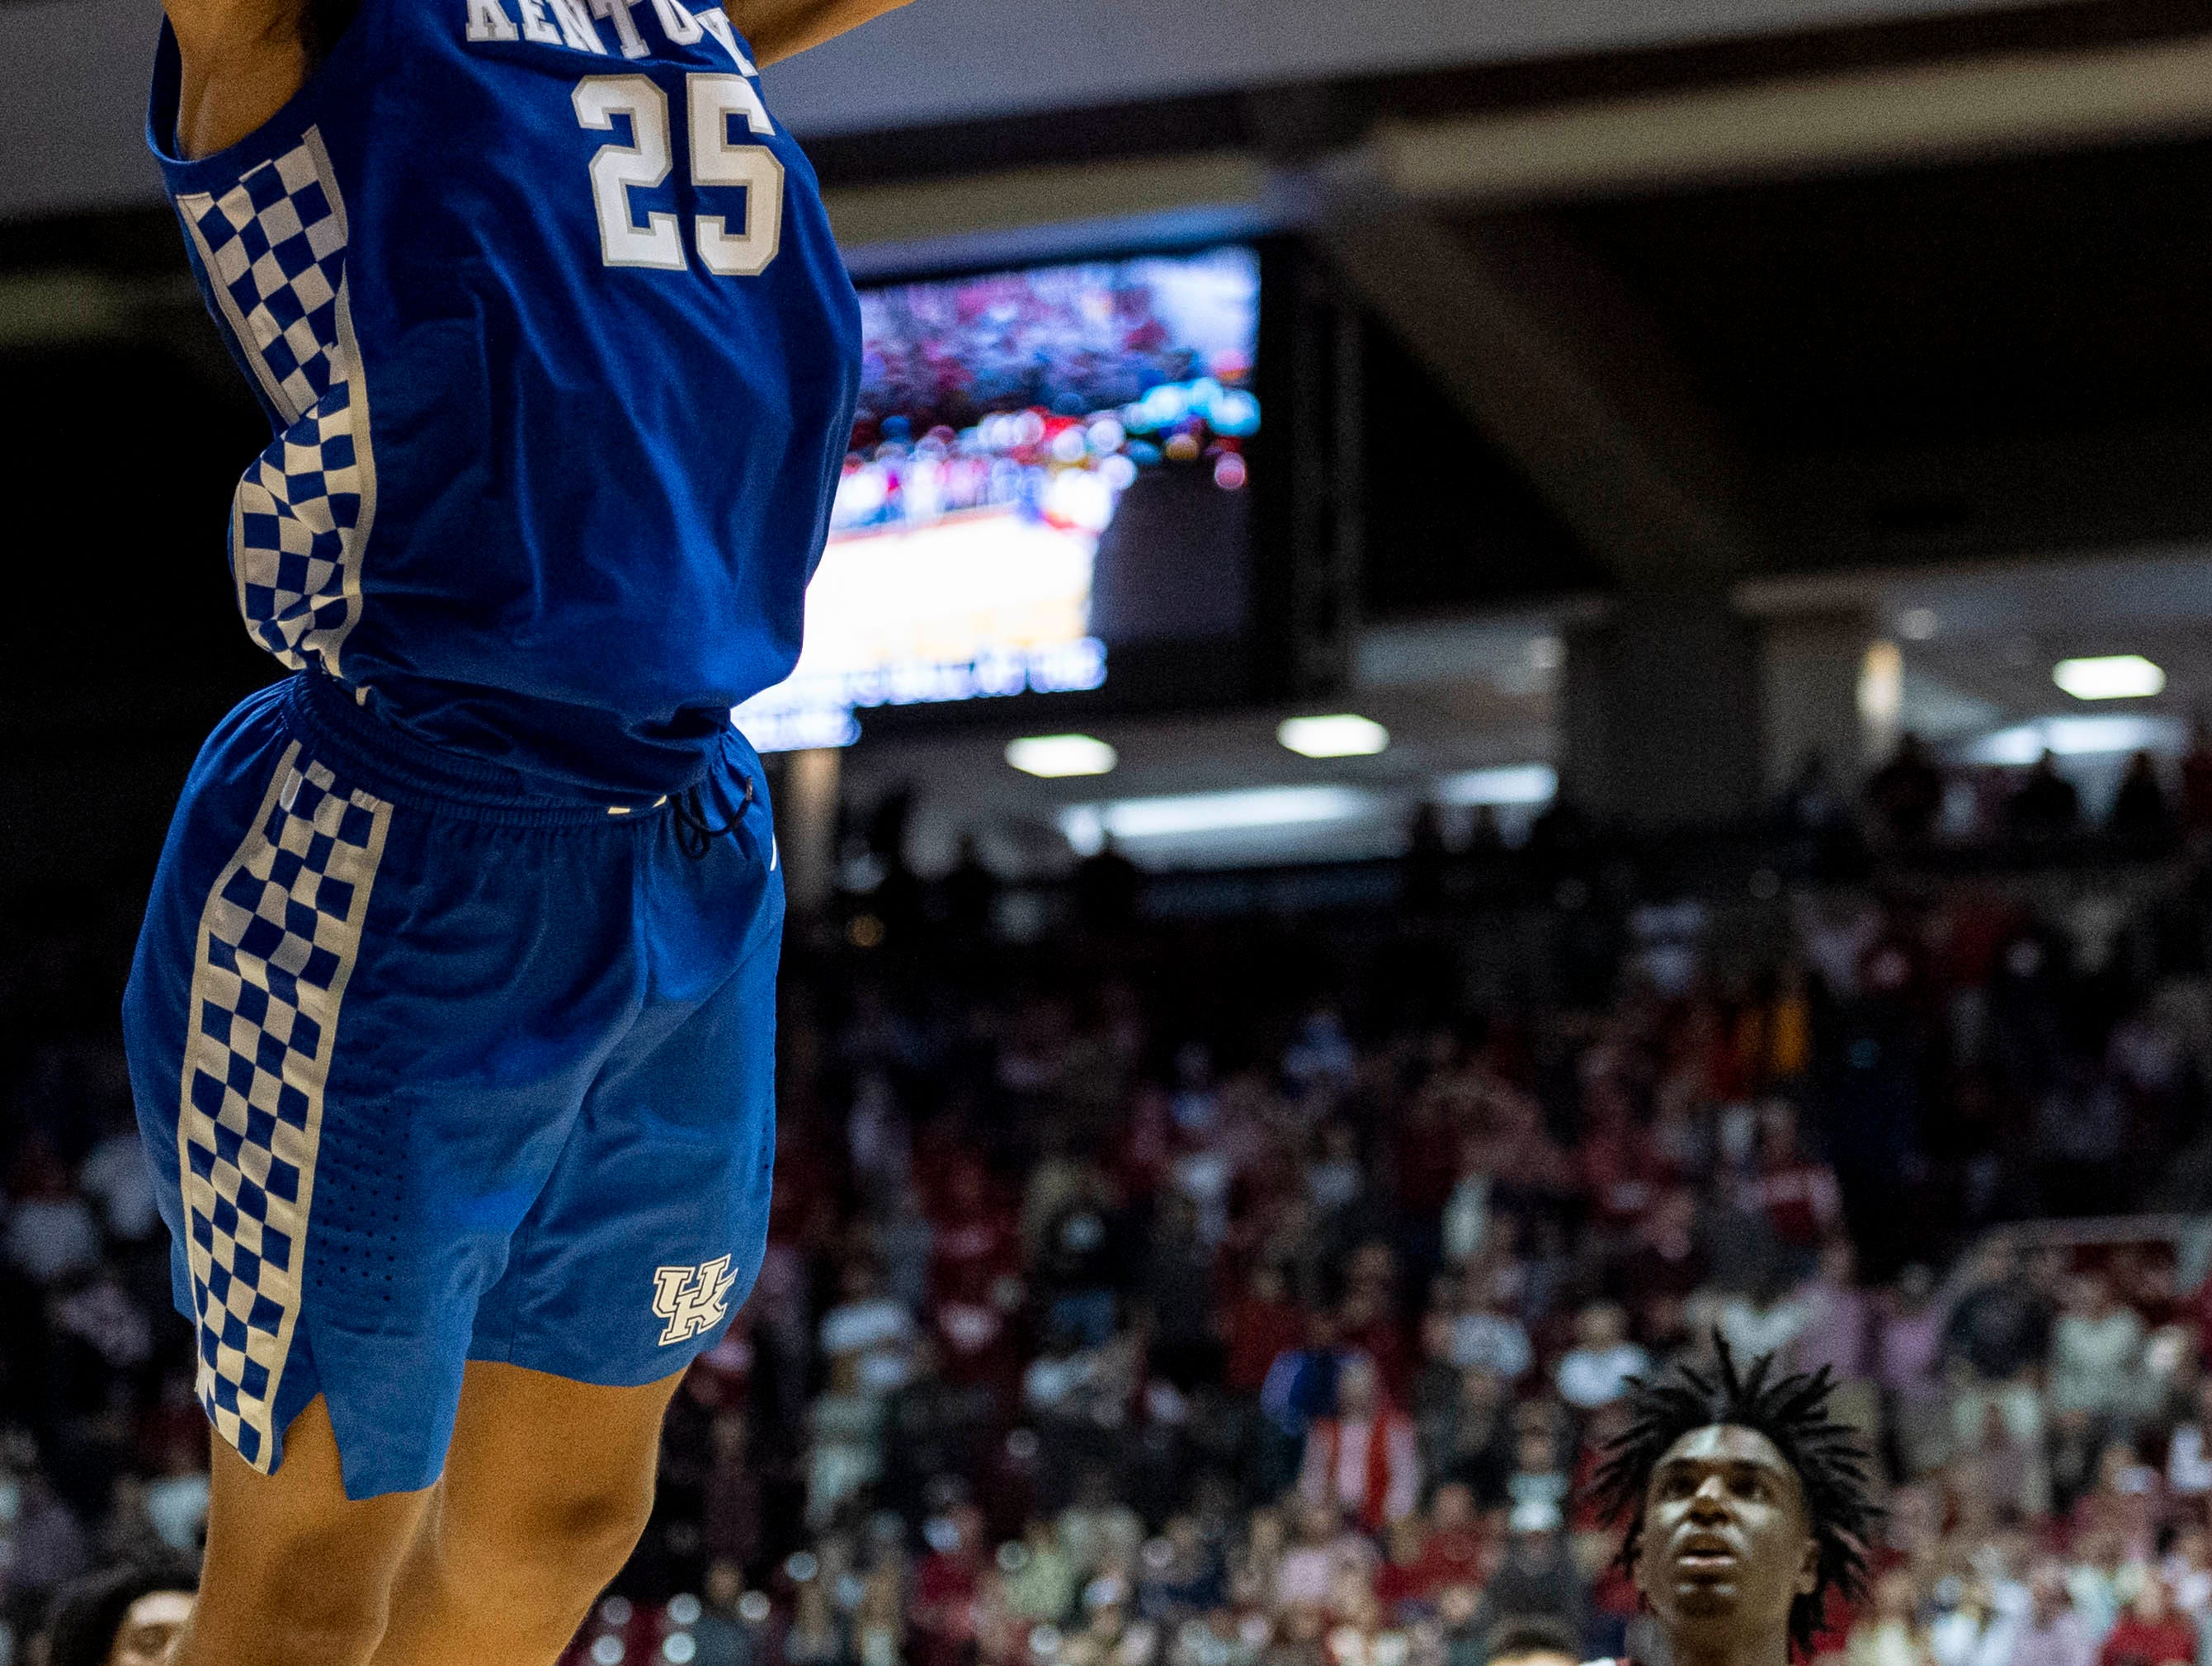 Kentucky forward PJ Washington (25) slams two points against Alabama during the second half of an NCAA college basketball game, Saturday, Jan. 5, 2019, in Tuscaloosa, Ala.